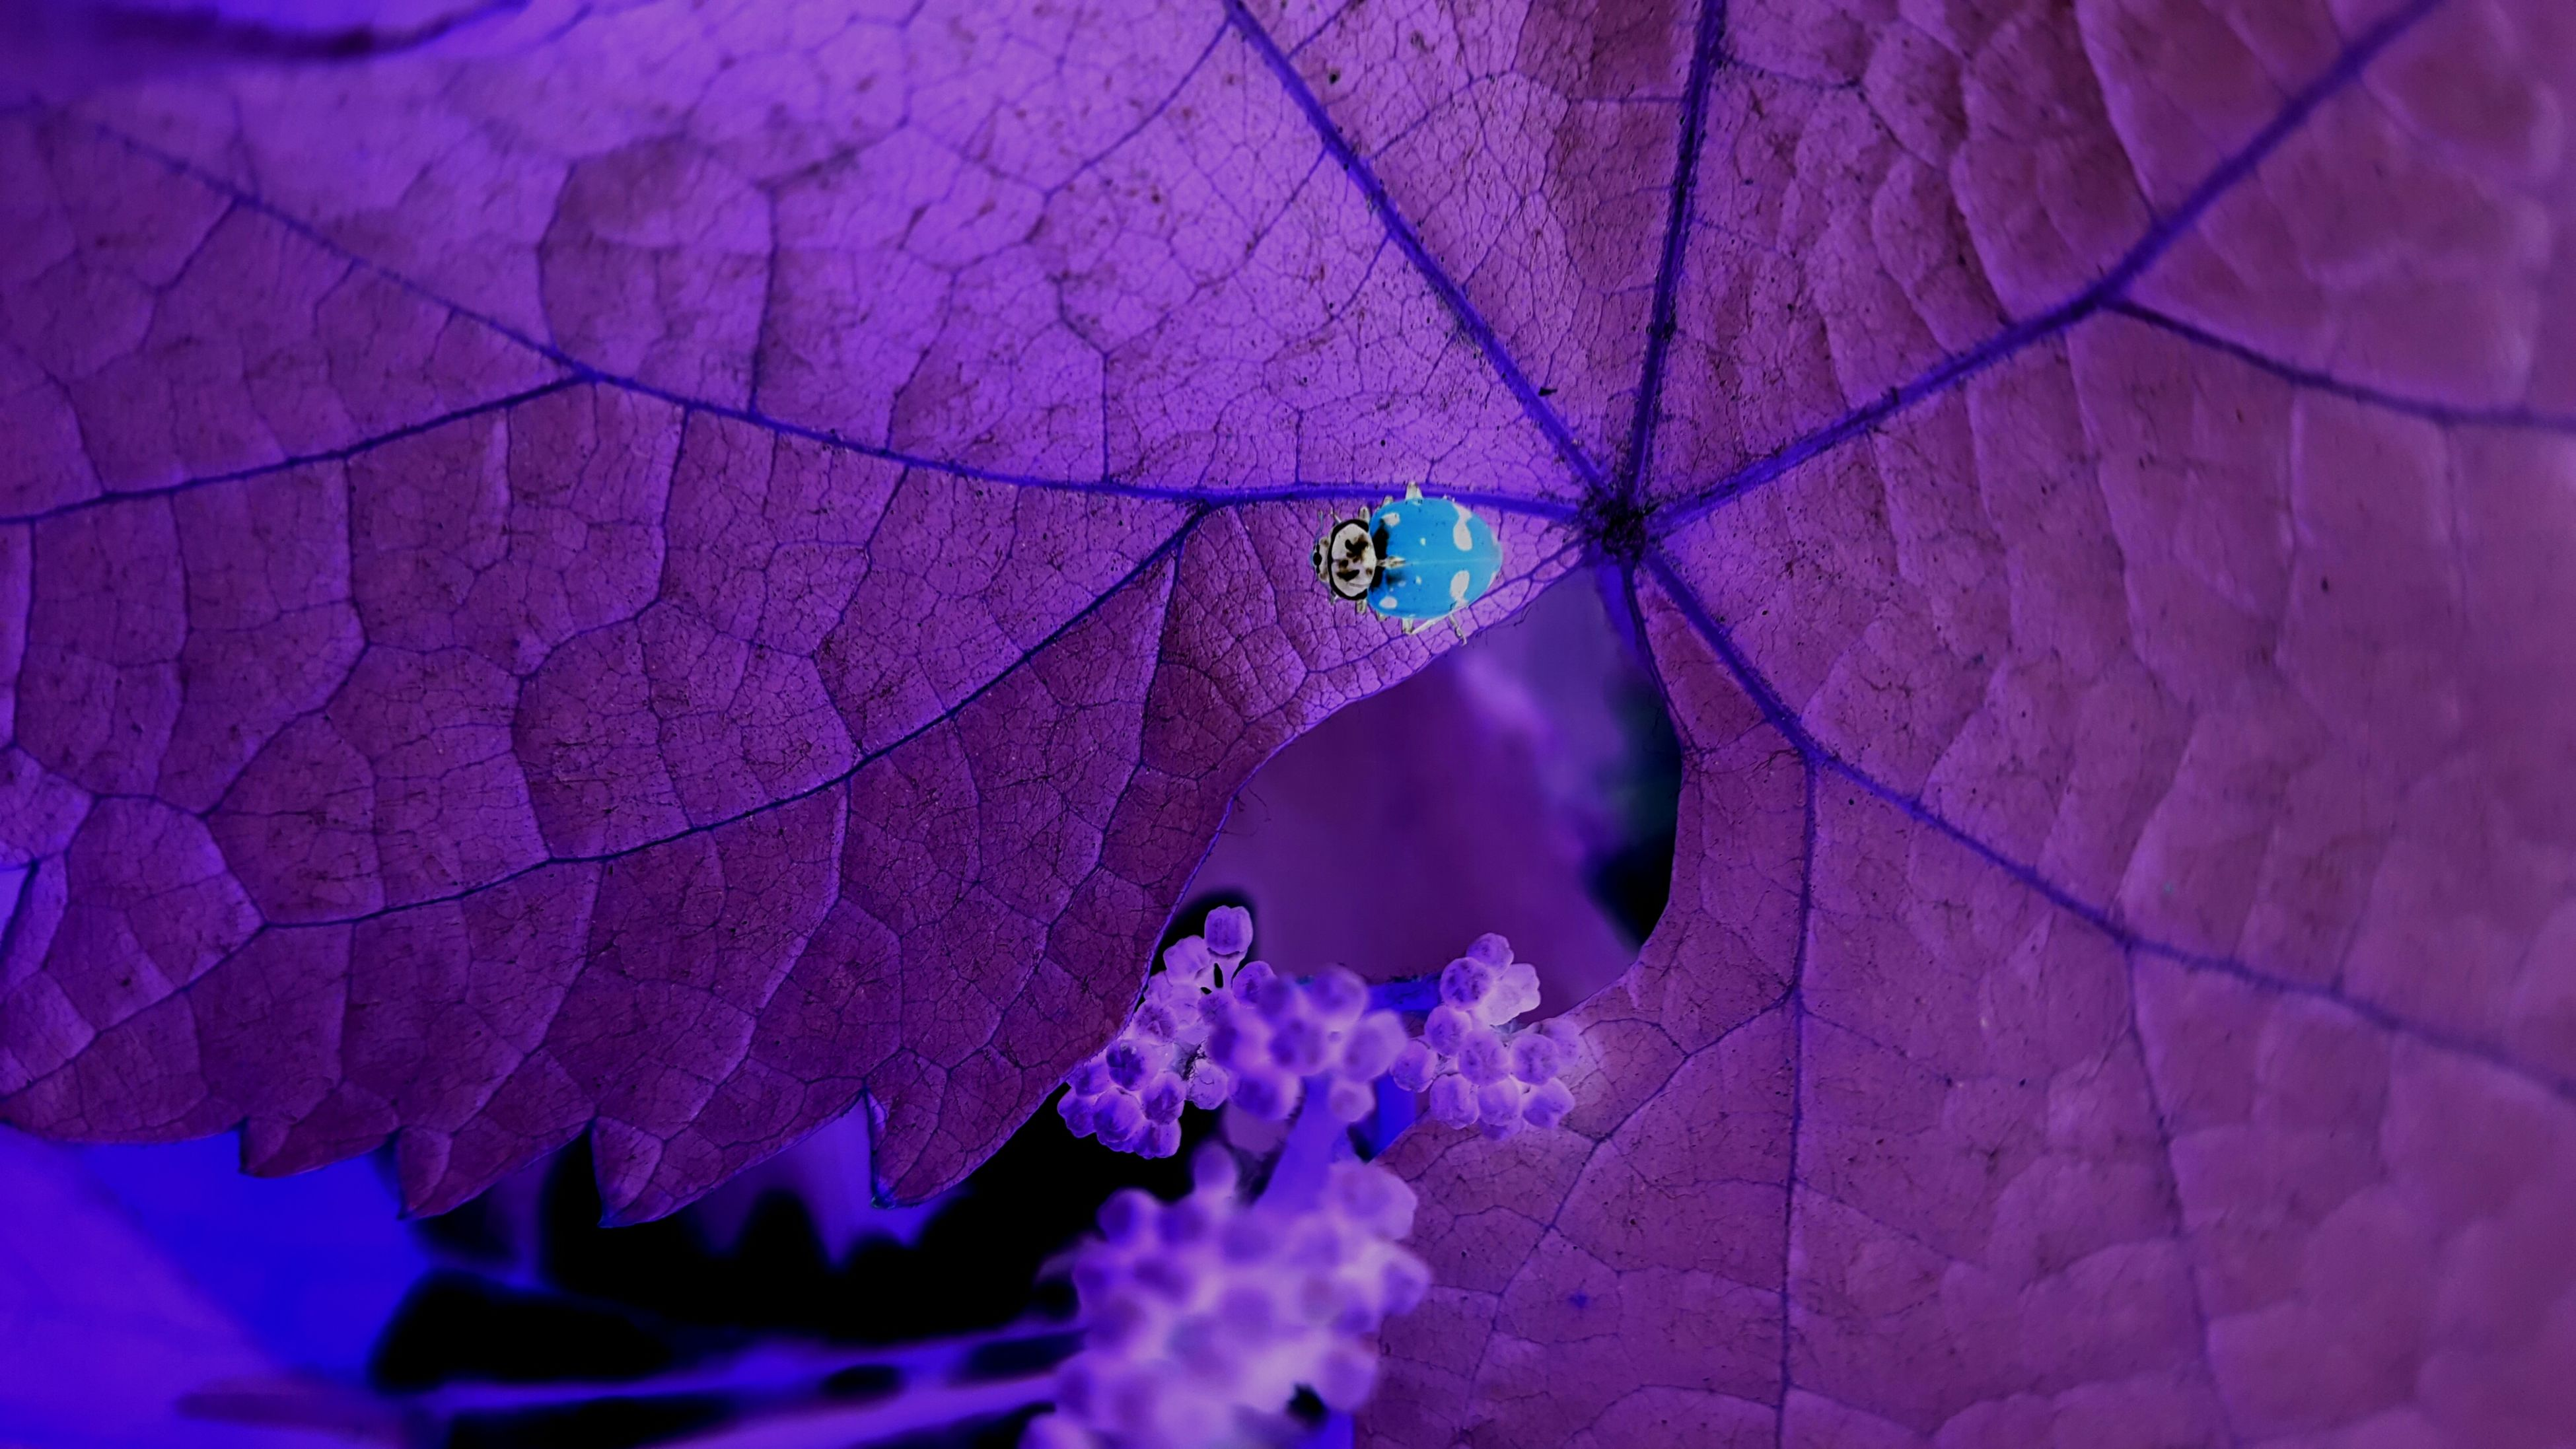 leaf, fragility, close-up, leaf vein, nature, flower, pink color, purple, beauty in nature, natural pattern, freshness, growth, plant, focus on foreground, outdoors, selective focus, day, insect, no people, petal